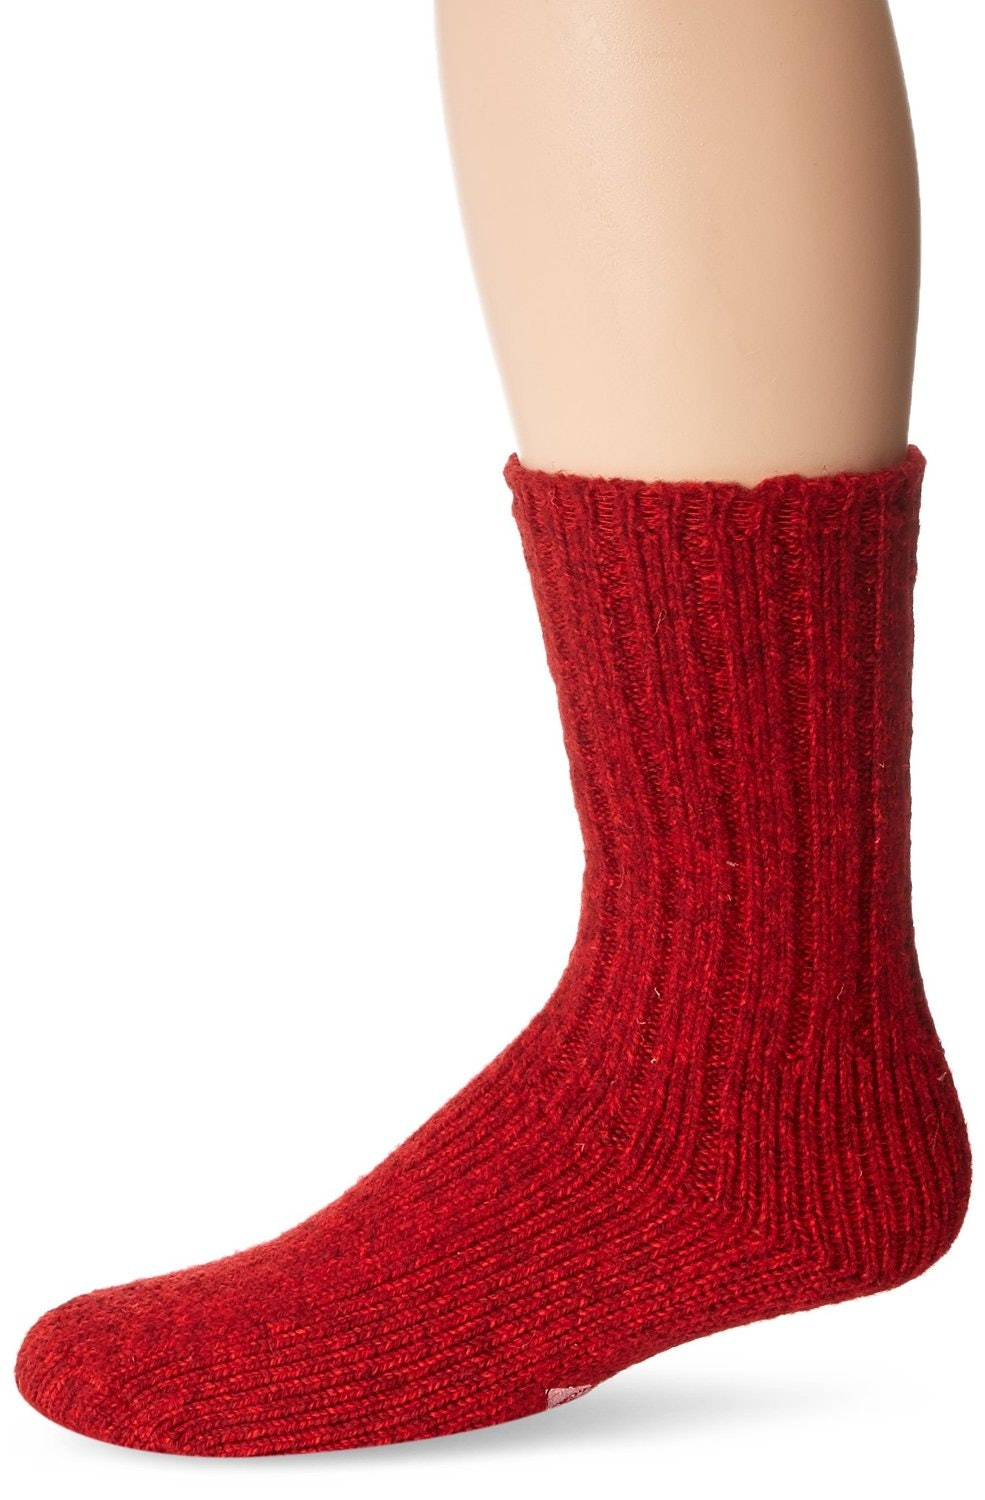 The 7 Warmest Socks For Winter Will Keep Your Toes From Freezing Off